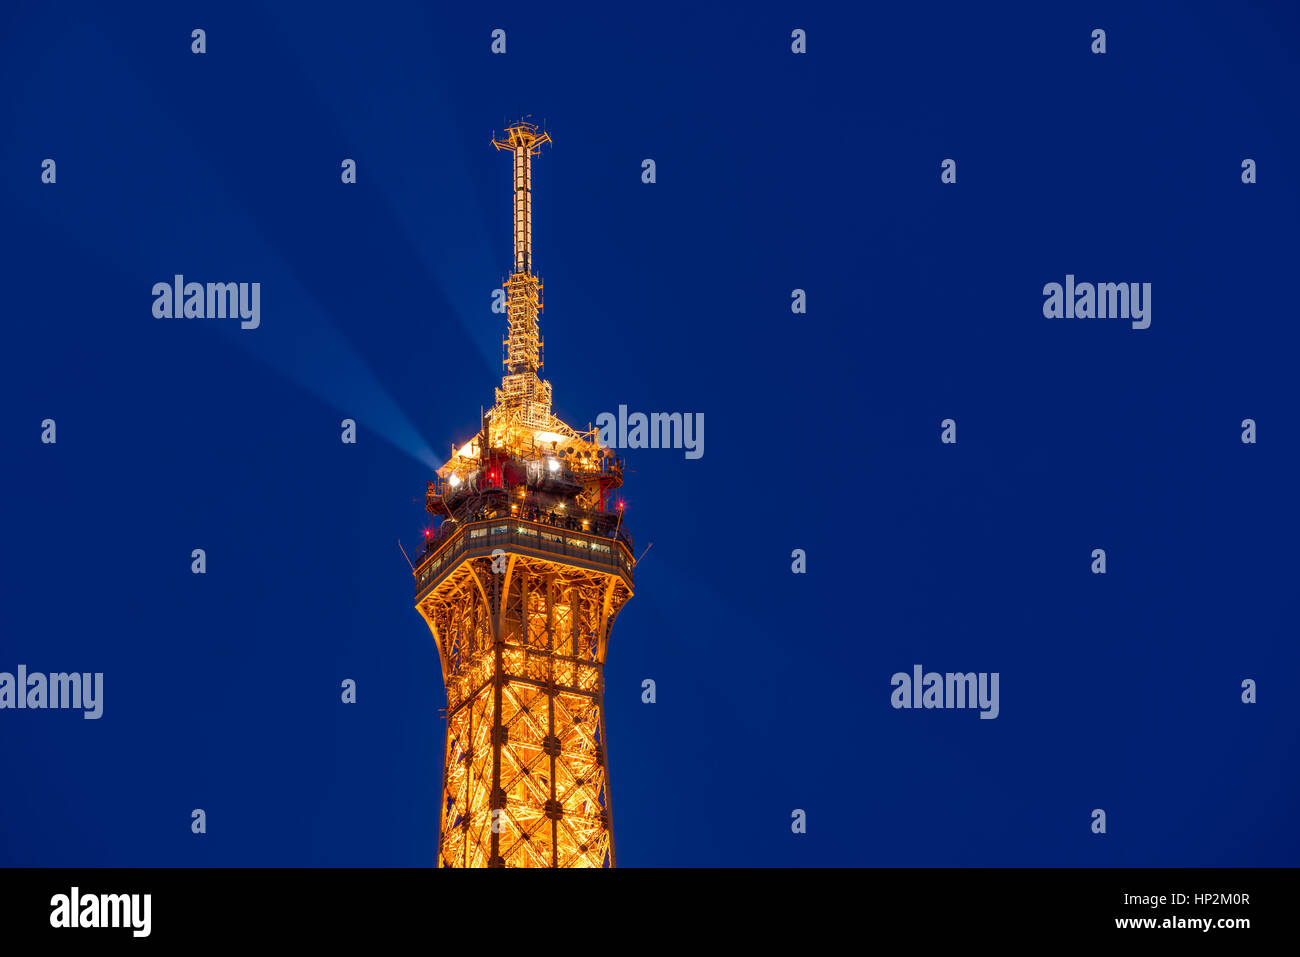 Le haut de la Tour Eiffel illuminée au crépuscule. Champs-de-Mars, 7e arrondissement, Paris, France Photo Stock